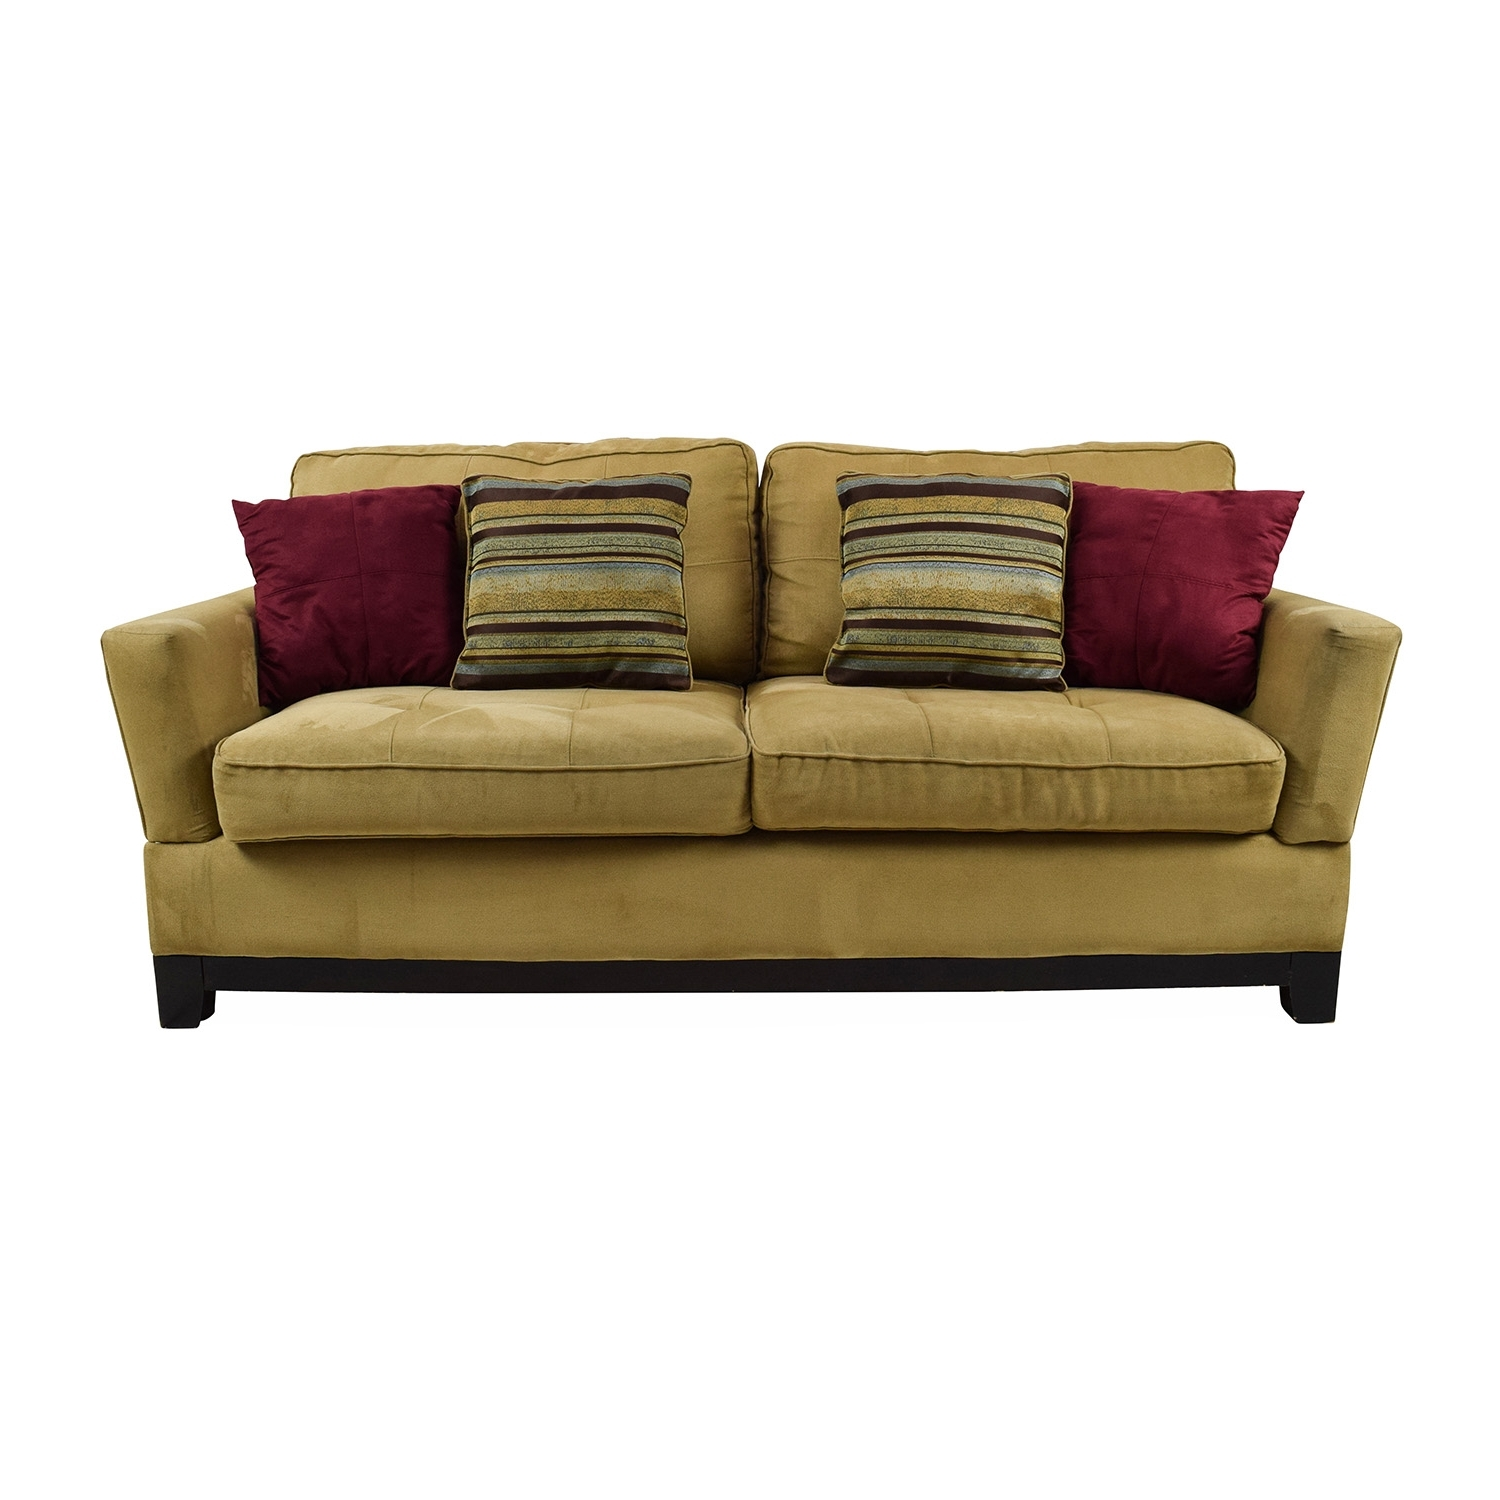 [%78% Off – Jennifer Convertibles Jennifer Convertibles Tan Sofa / Sofas Intended For Popular Jennifer Sofas|Jennifer Sofas In Most Recent 78% Off – Jennifer Convertibles Jennifer Convertibles Tan Sofa / Sofas|Trendy Jennifer Sofas Intended For 78% Off – Jennifer Convertibles Jennifer Convertibles Tan Sofa / Sofas|2019 78% Off – Jennifer Convertibles Jennifer Convertibles Tan Sofa / Sofas With Jennifer Sofas%] (View 7 of 20)